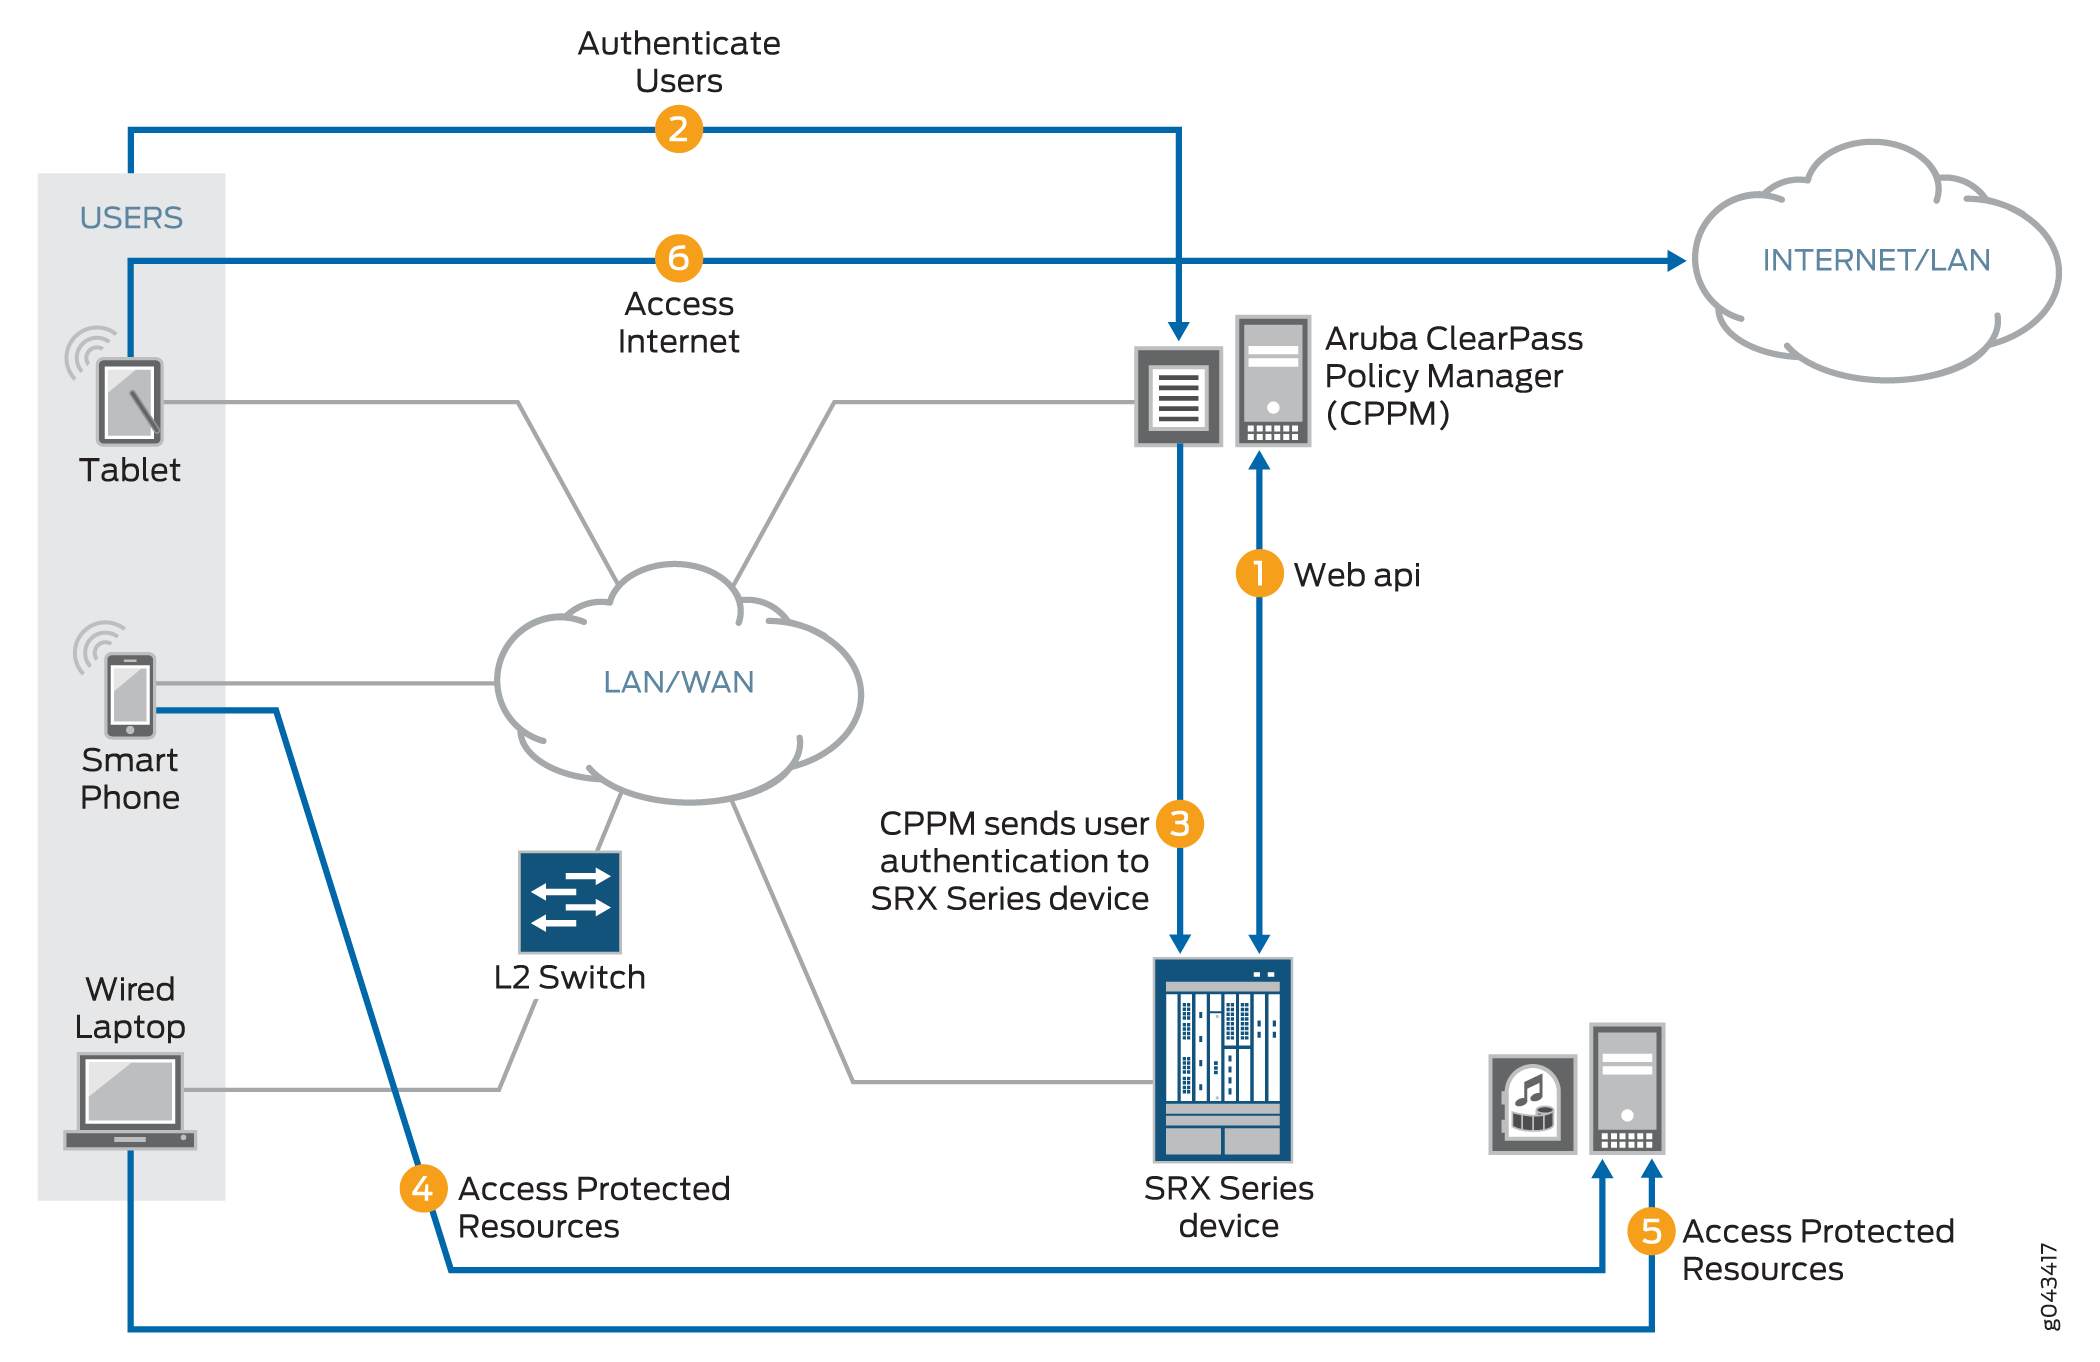 ClearPass and SRX Series Device Communication and User Authentication Process